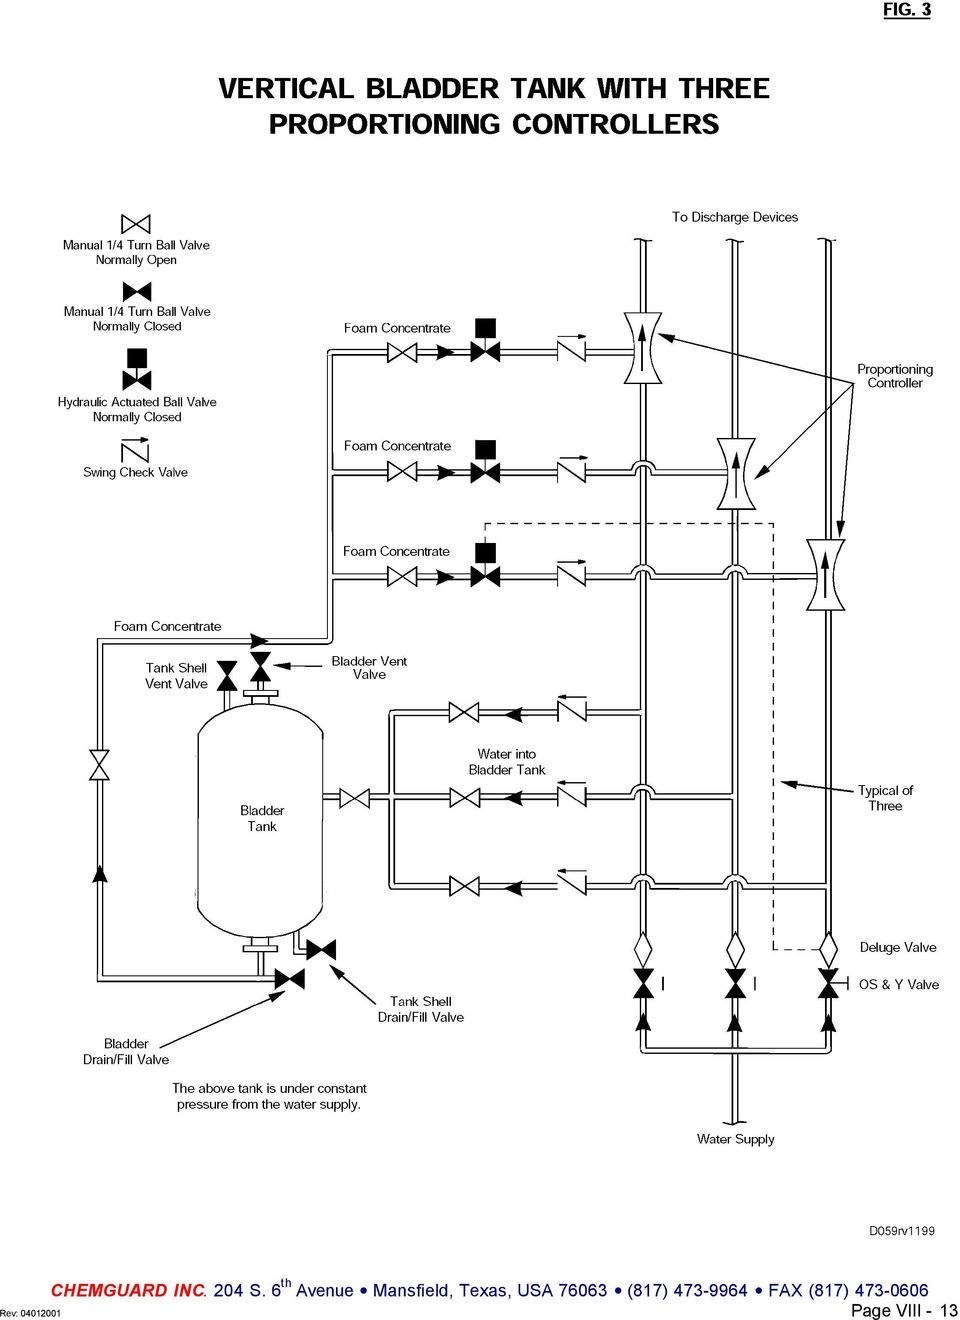 Bladder Tank Maintenance And Inspection Manual Pdf 1212 Doc Schematic Technical Info Parts List Page Viii